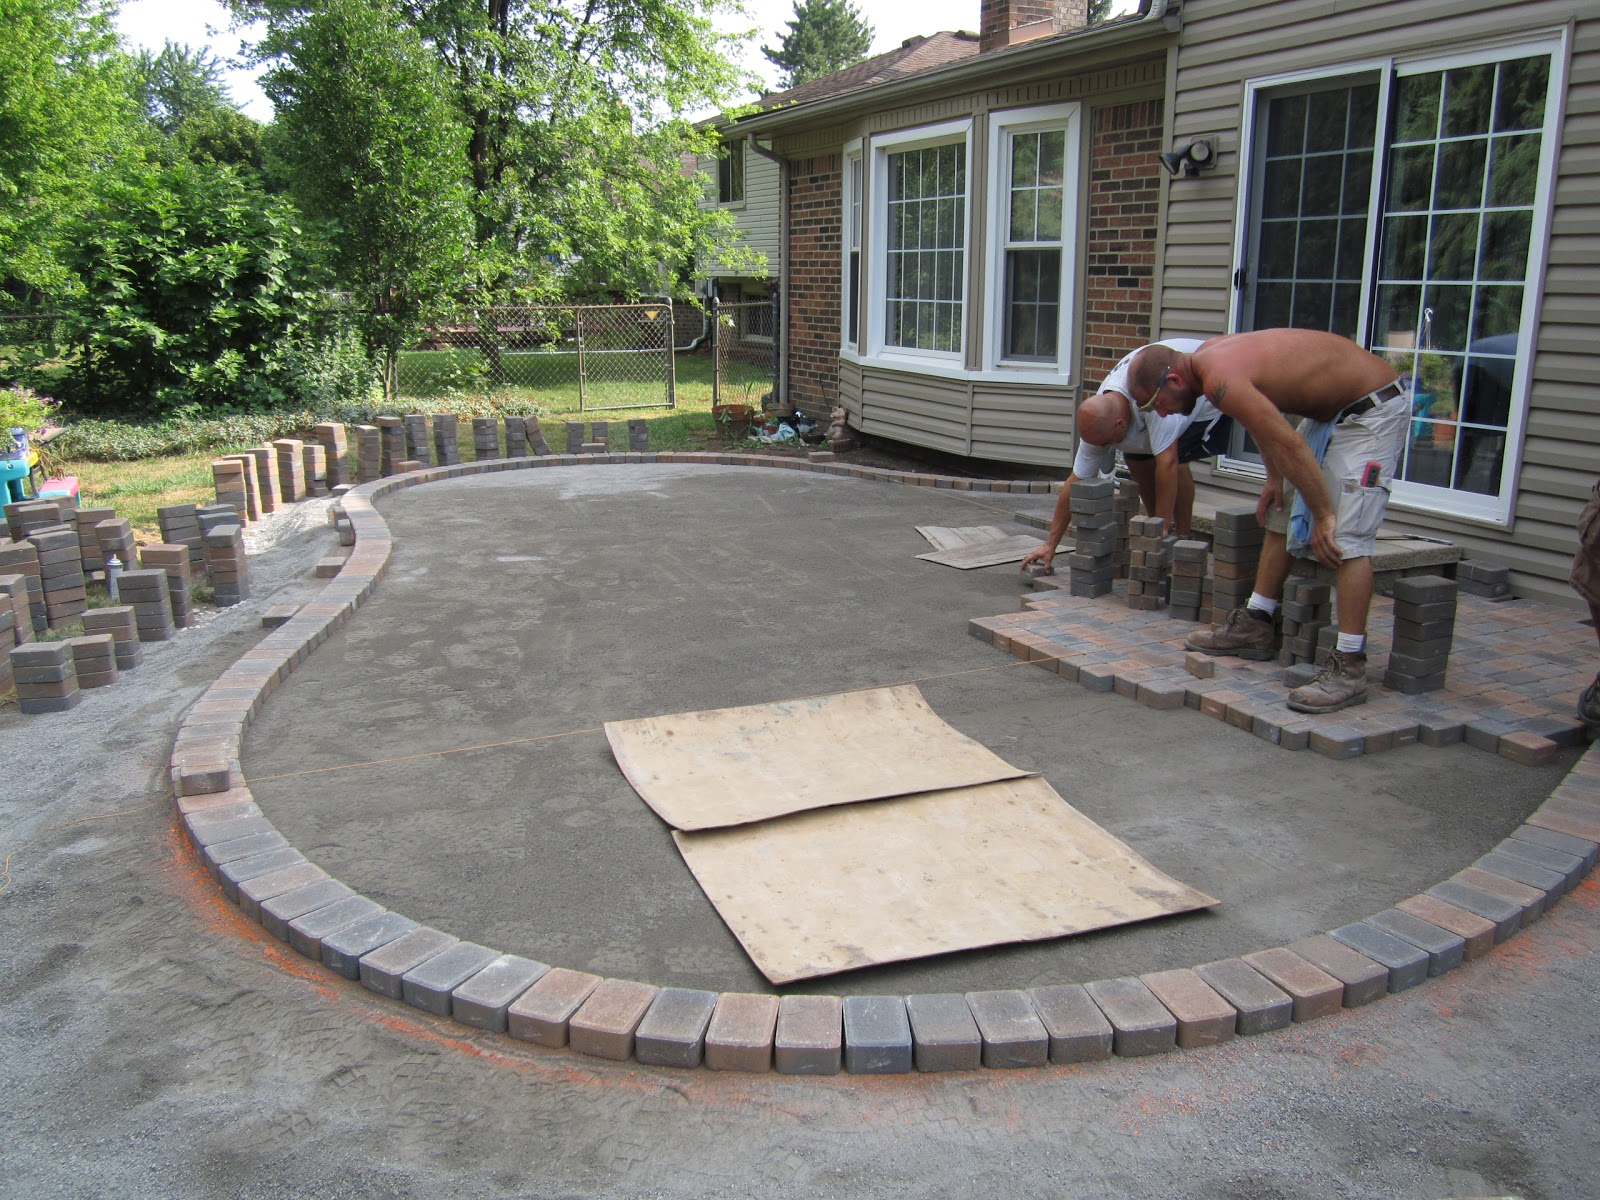 Brick paver patio ideas patio design ideas - Paver designs for backyard ...